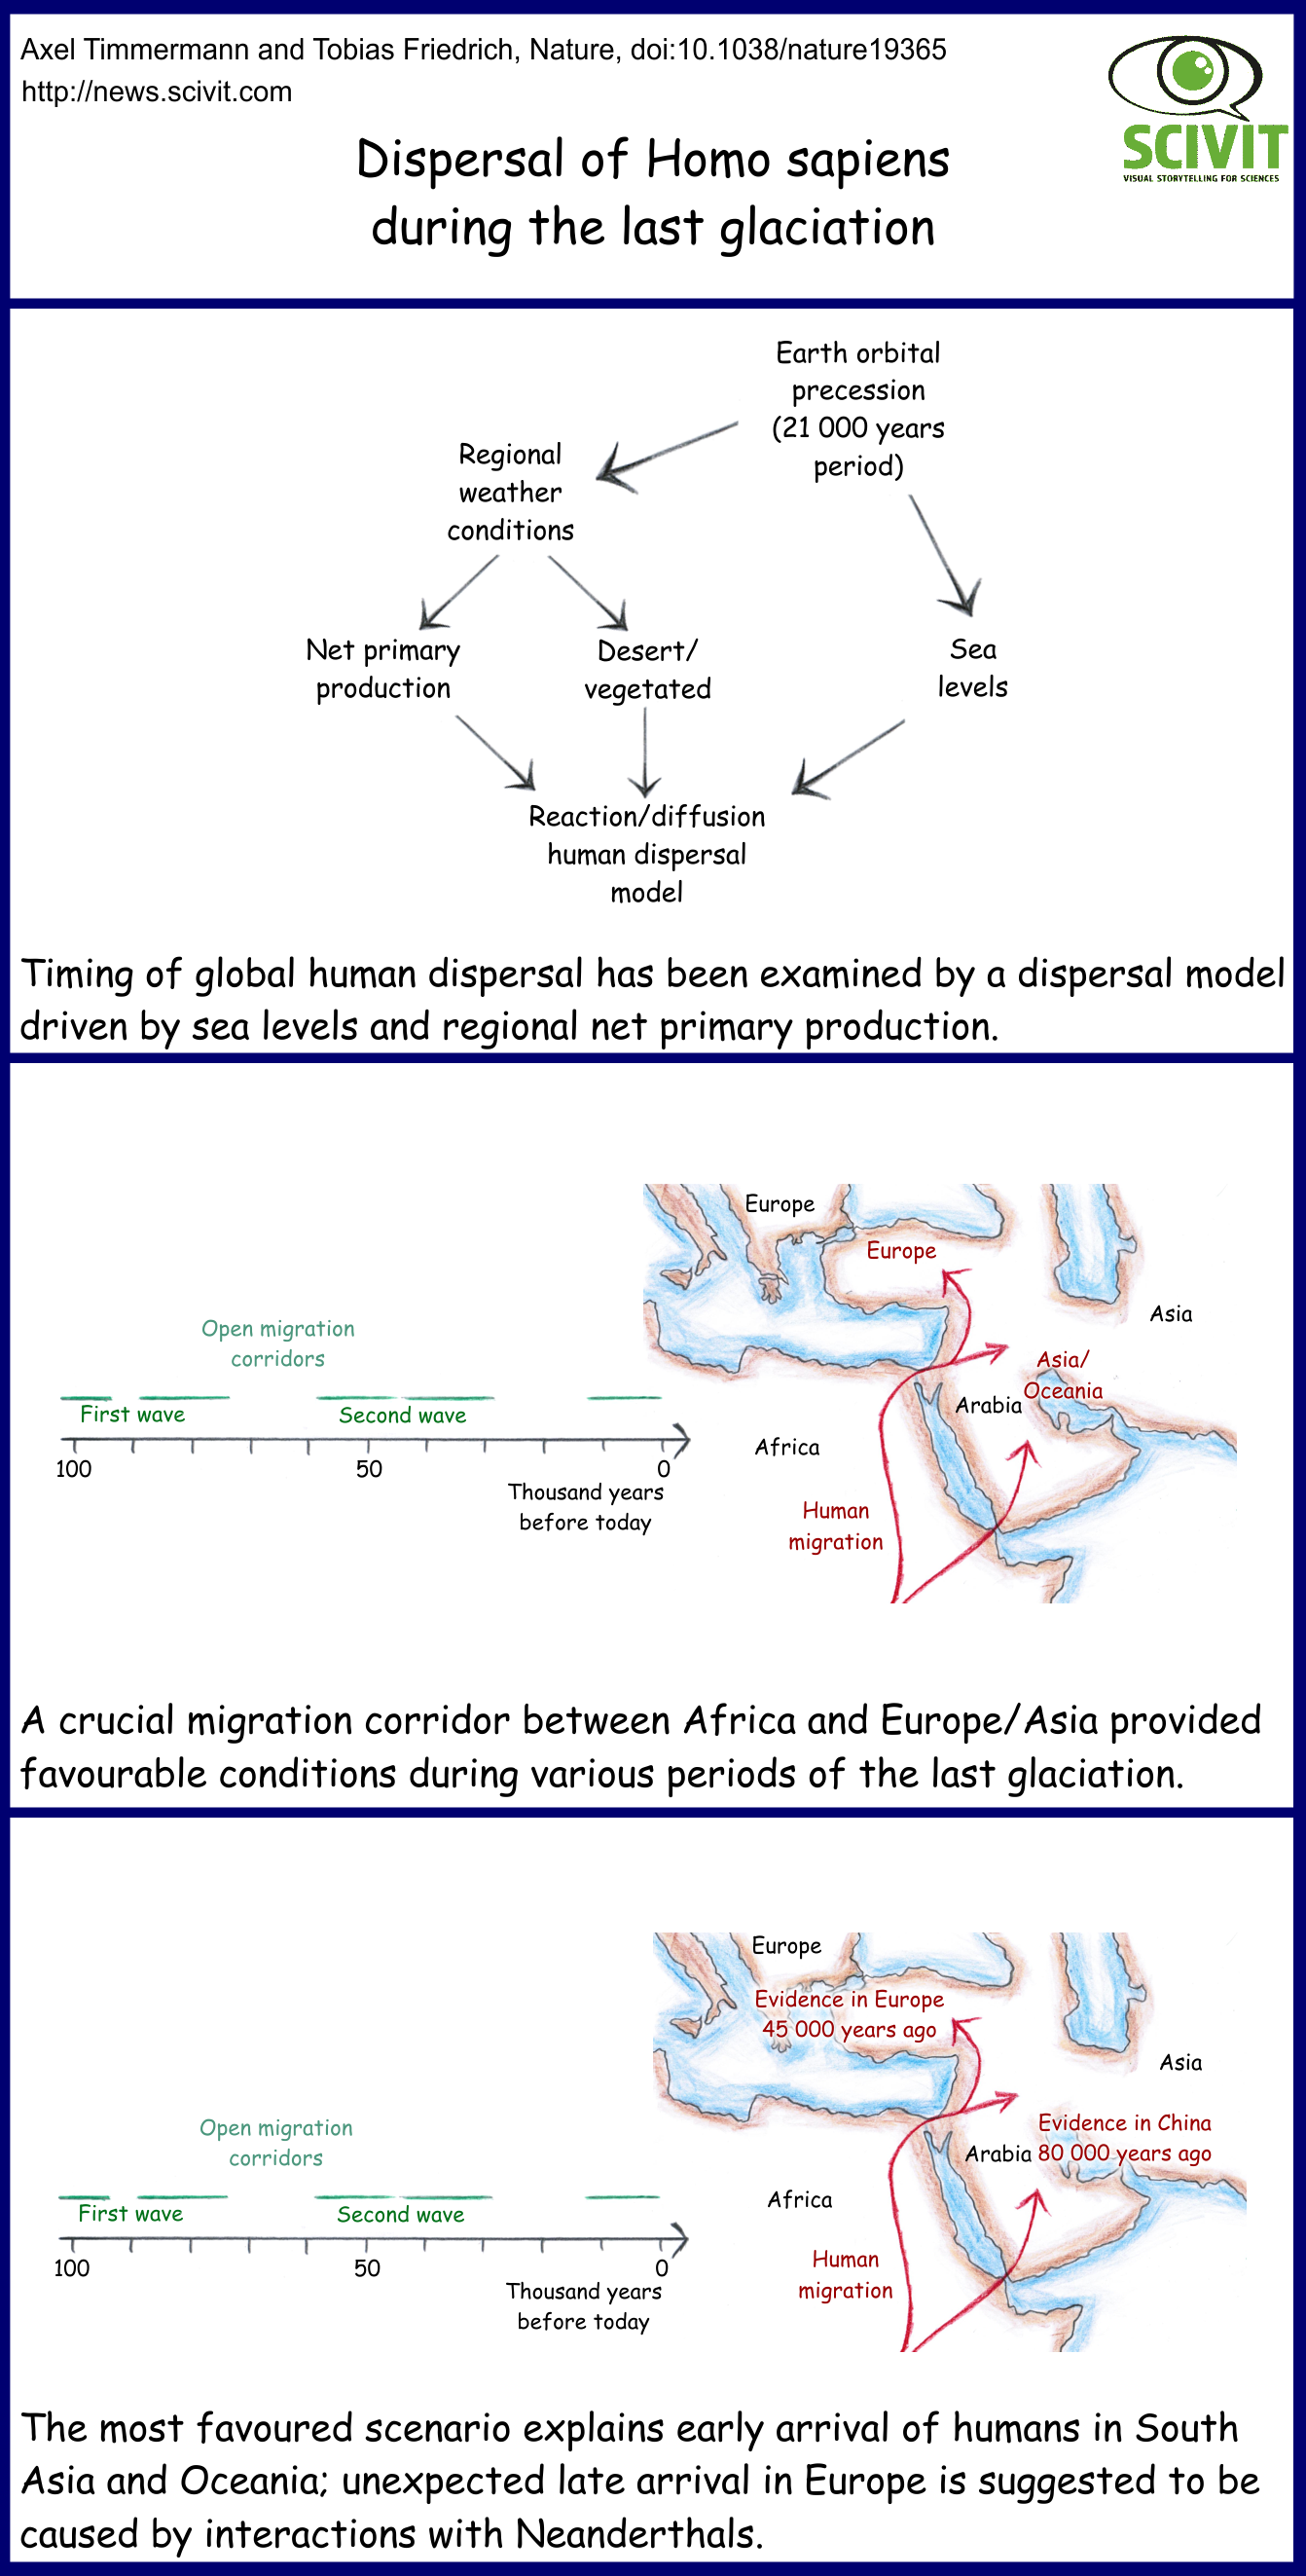 Dispersal of Homo sapiens during the last glaciation